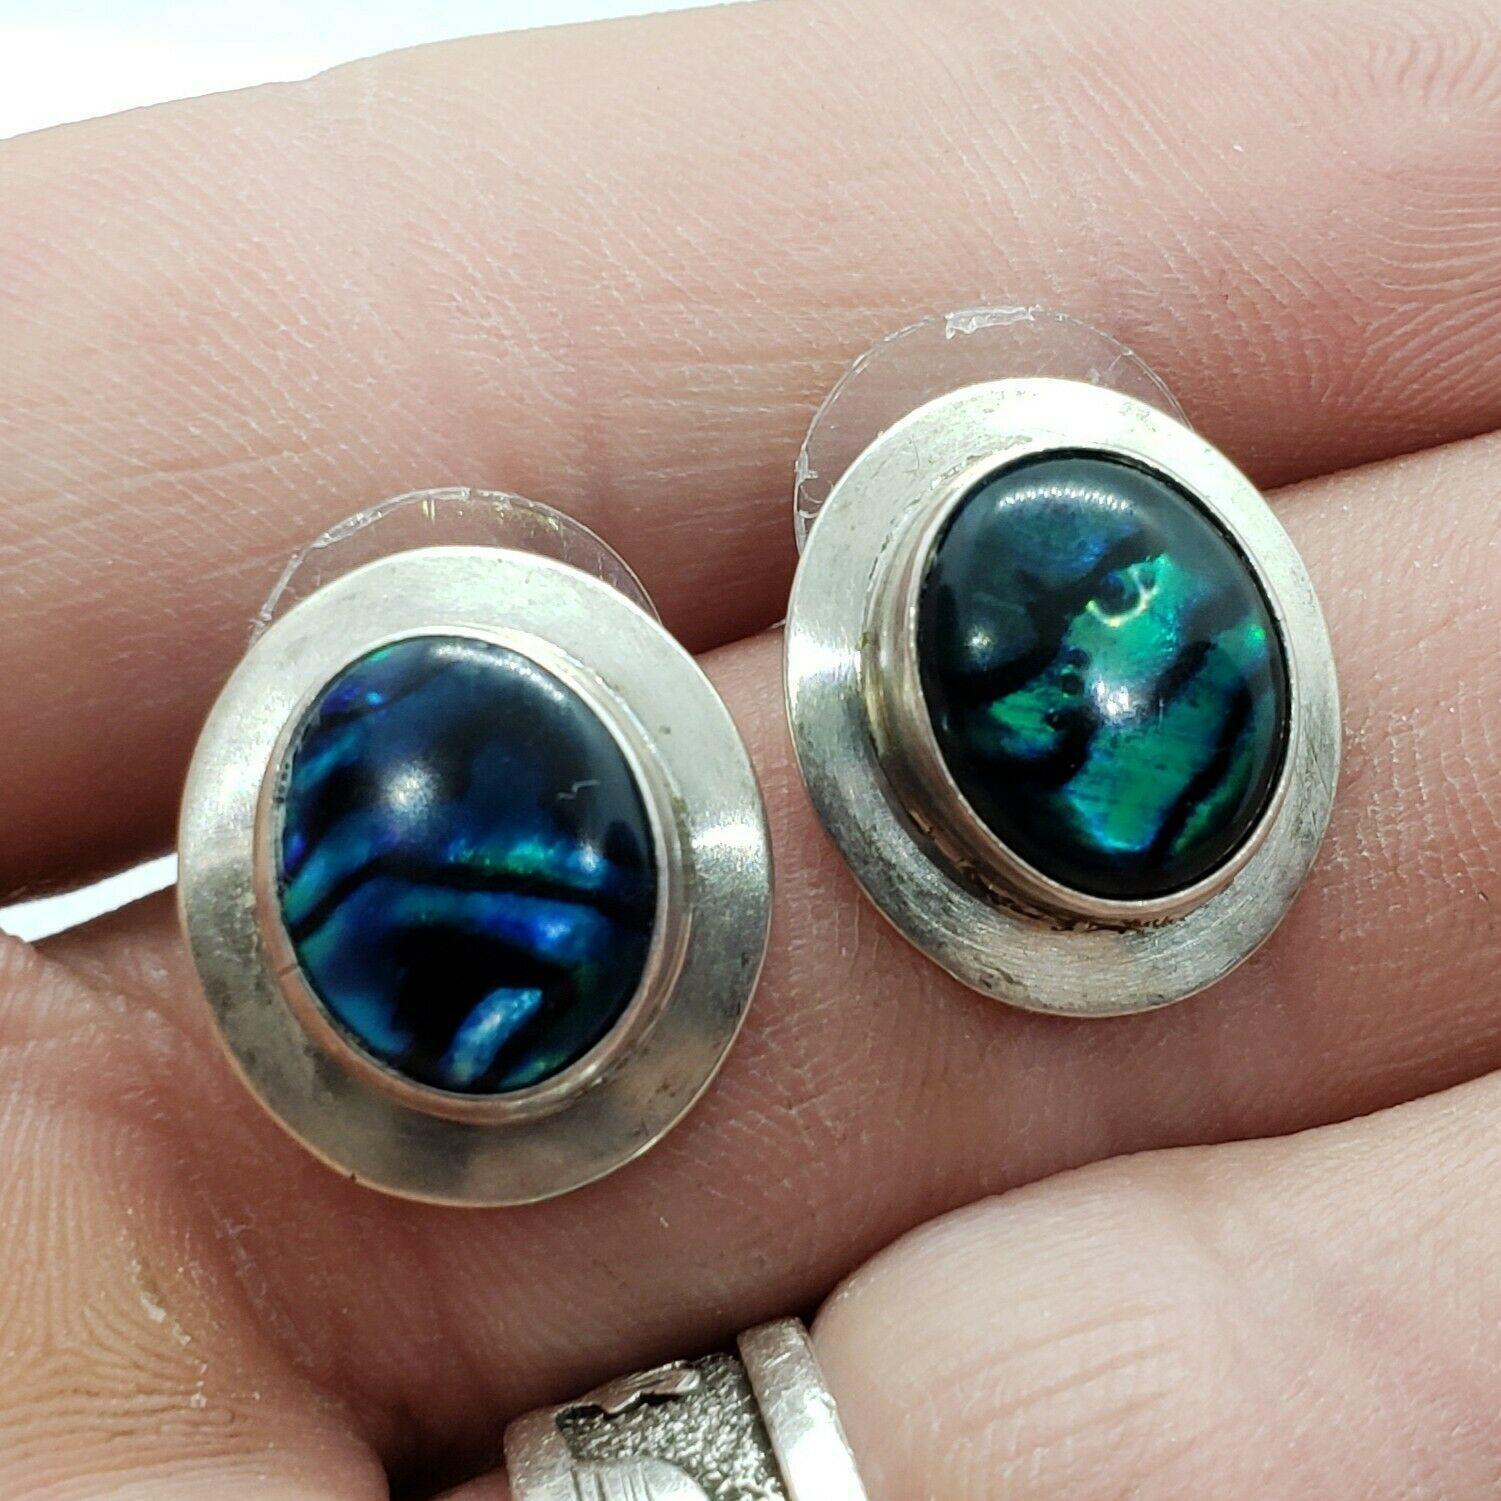 Primary image for 1988 RAINSTAR USA Sterling Silver 925 Abalone Stud Earrings FREE Shipping